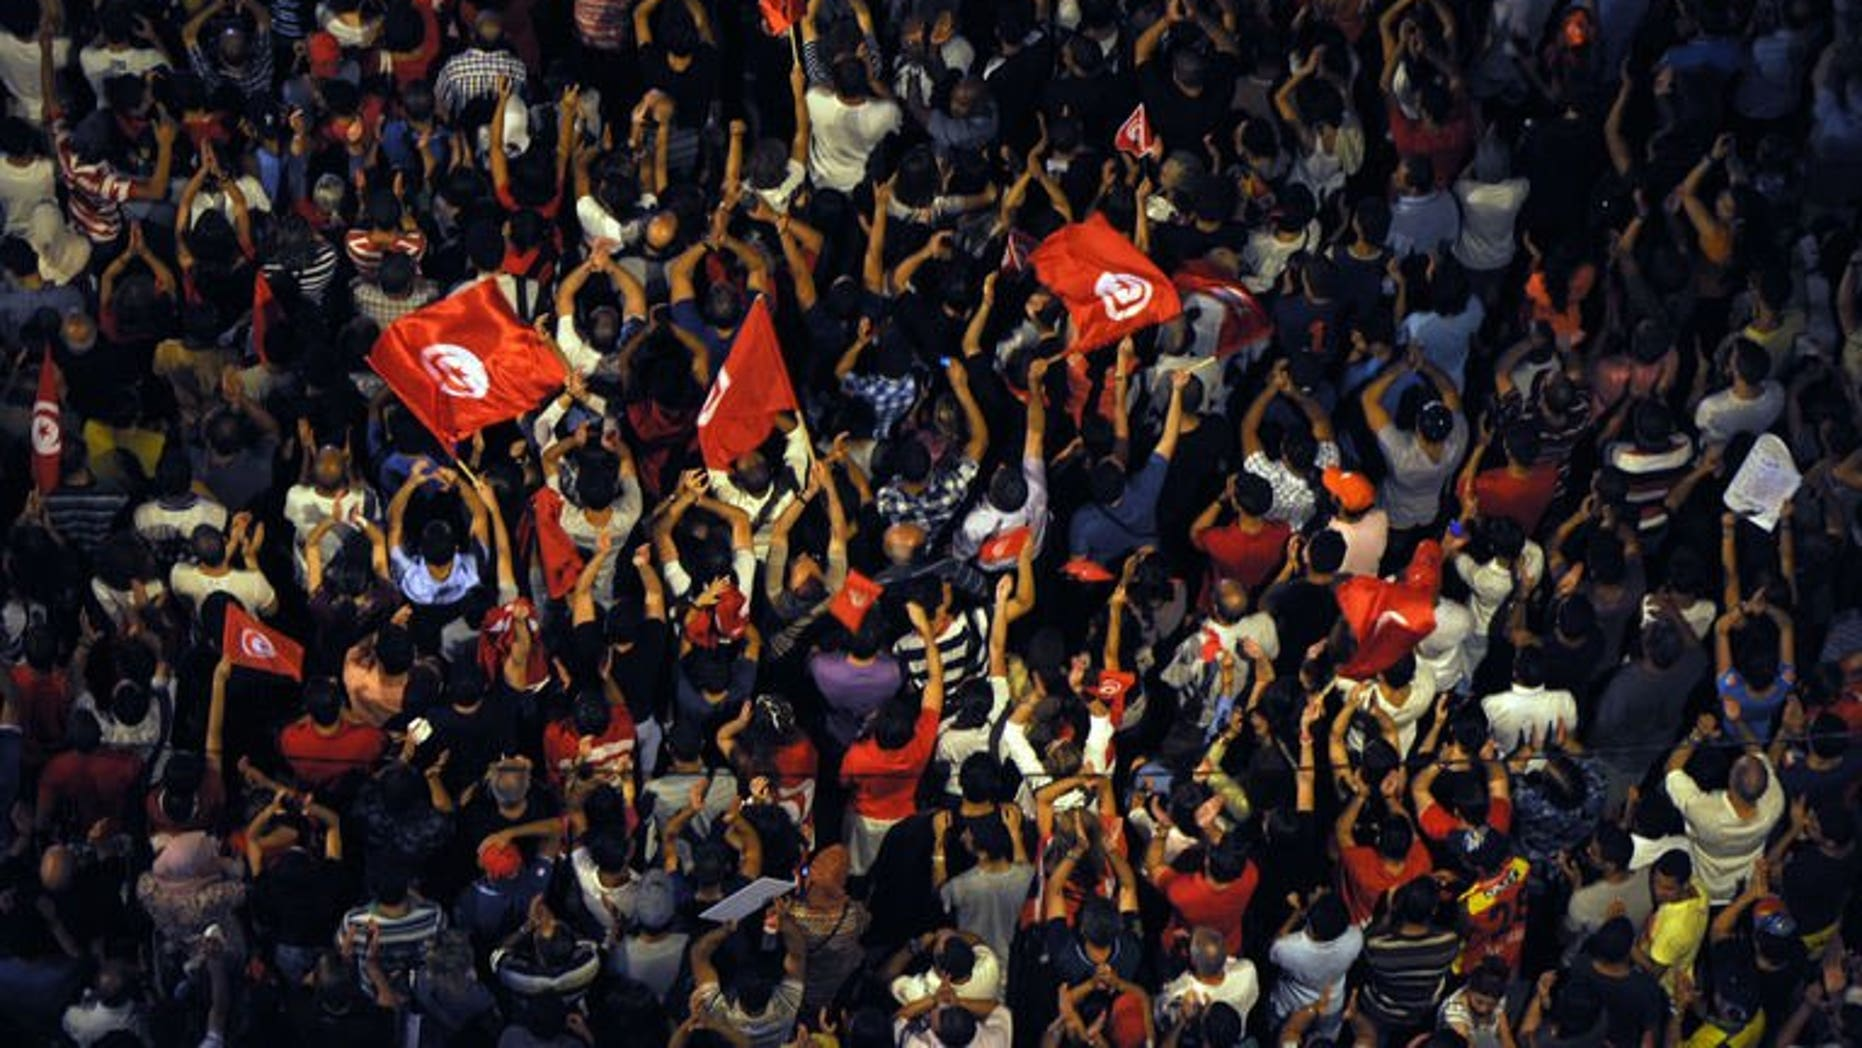 Tunisians wave flags and chant slogans in front of the Constituent Assembly headquarters against the Islamist government on August 4, 2013 in Tunis. Police used batons and tear gas against protesters who tried to break into local government offices in Sidi Bouzid, cradle of the 2011 revolution, an AFP journalist said.